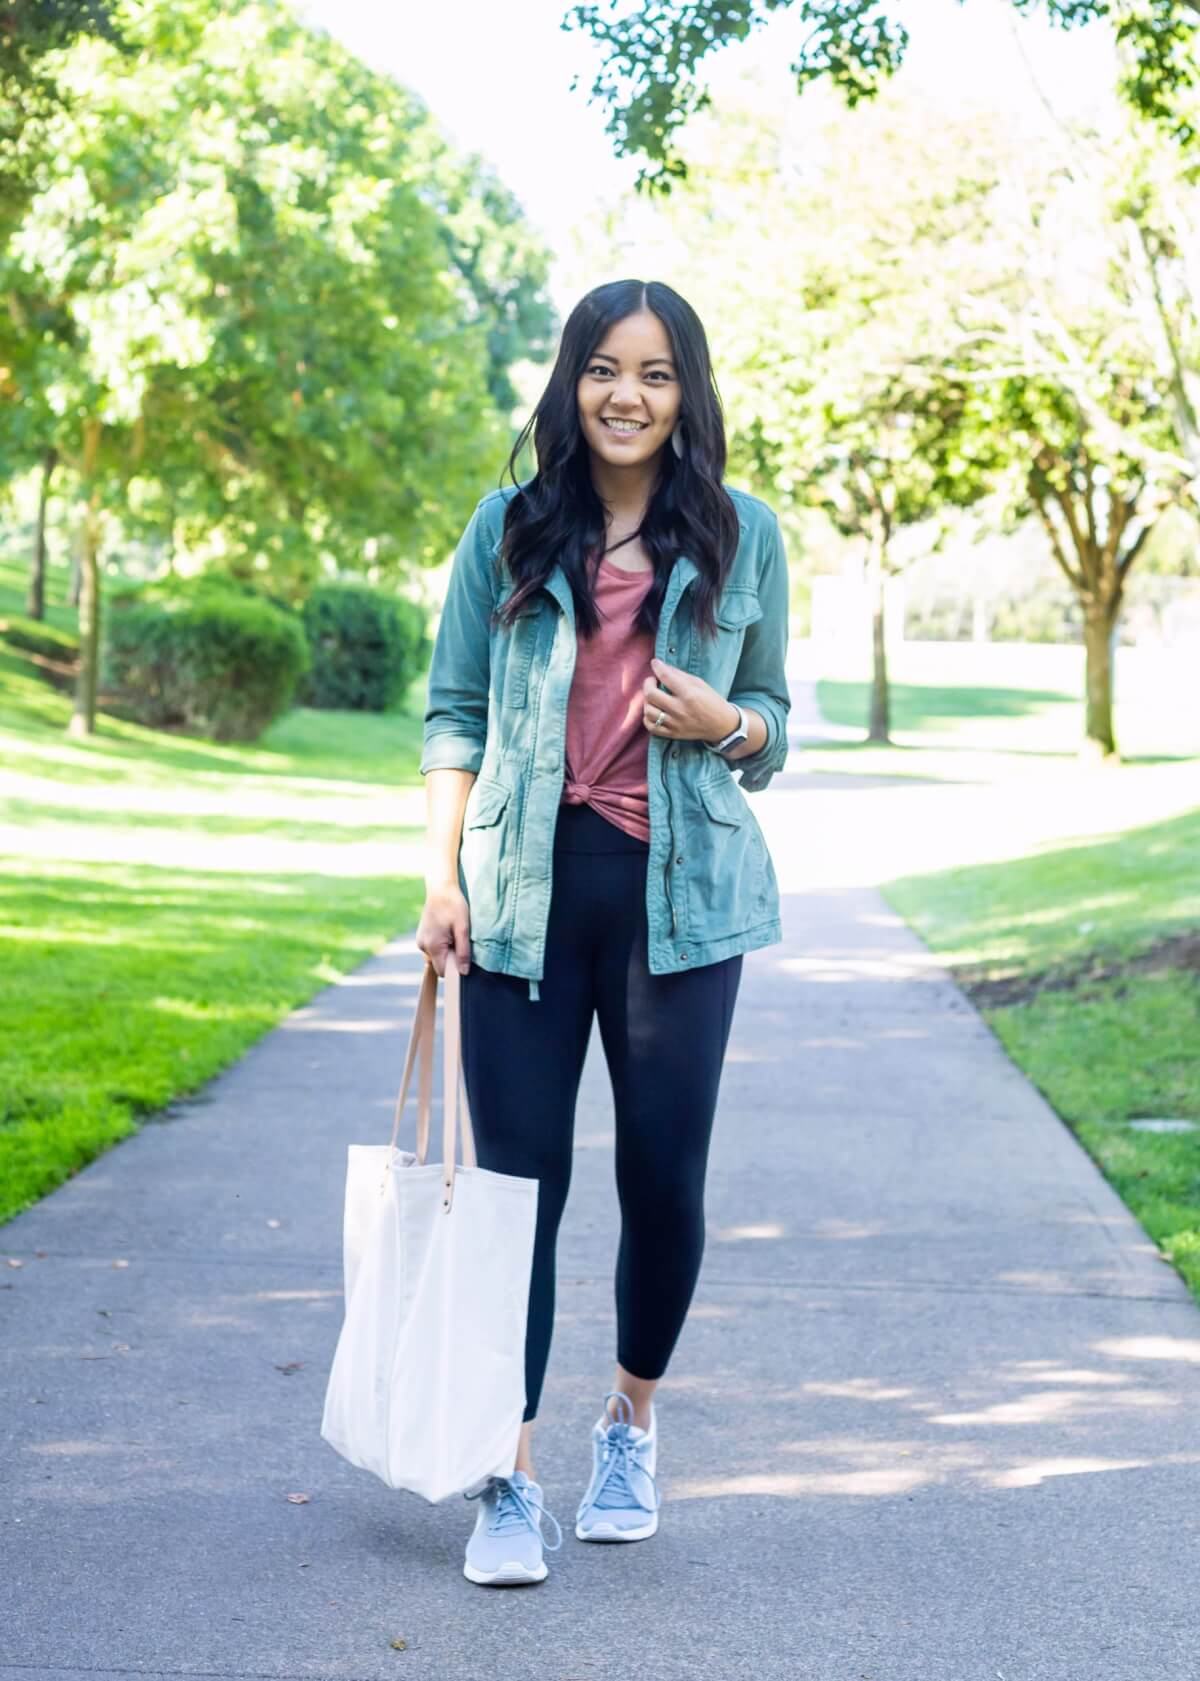 Casual Fall Outfit: knotted dusty pink tee + black leggings + green utility jacket + gray lace up sneakers + white canvas tote